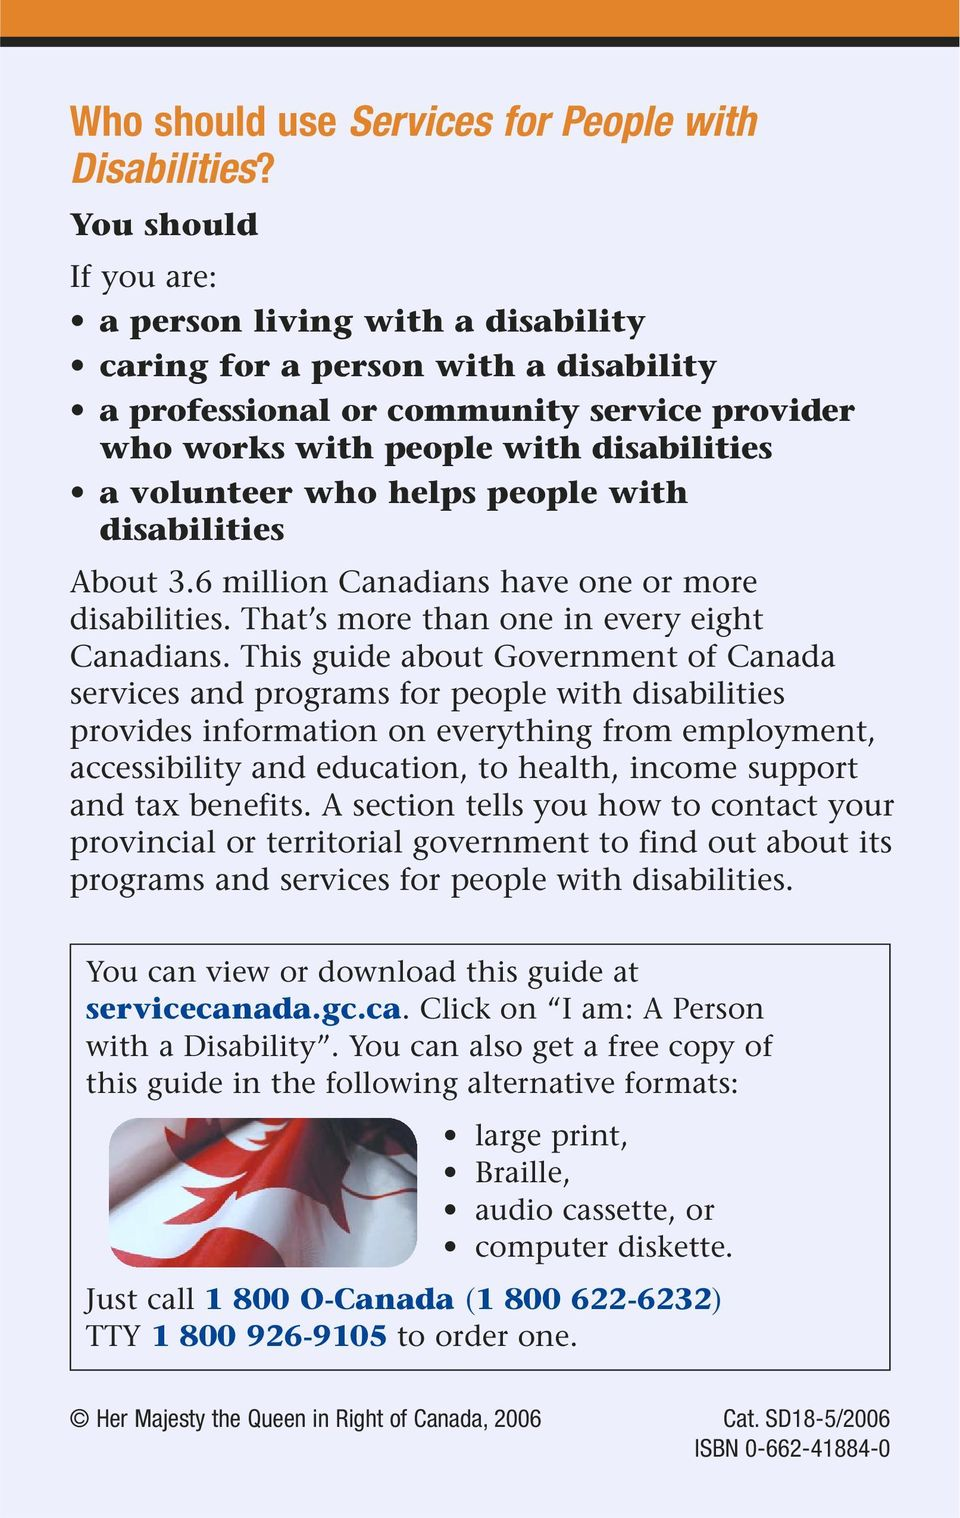 helps people with disabilities About 3.6 million Canadians have one or more disabilities. That s more than one in every eight Canadians.